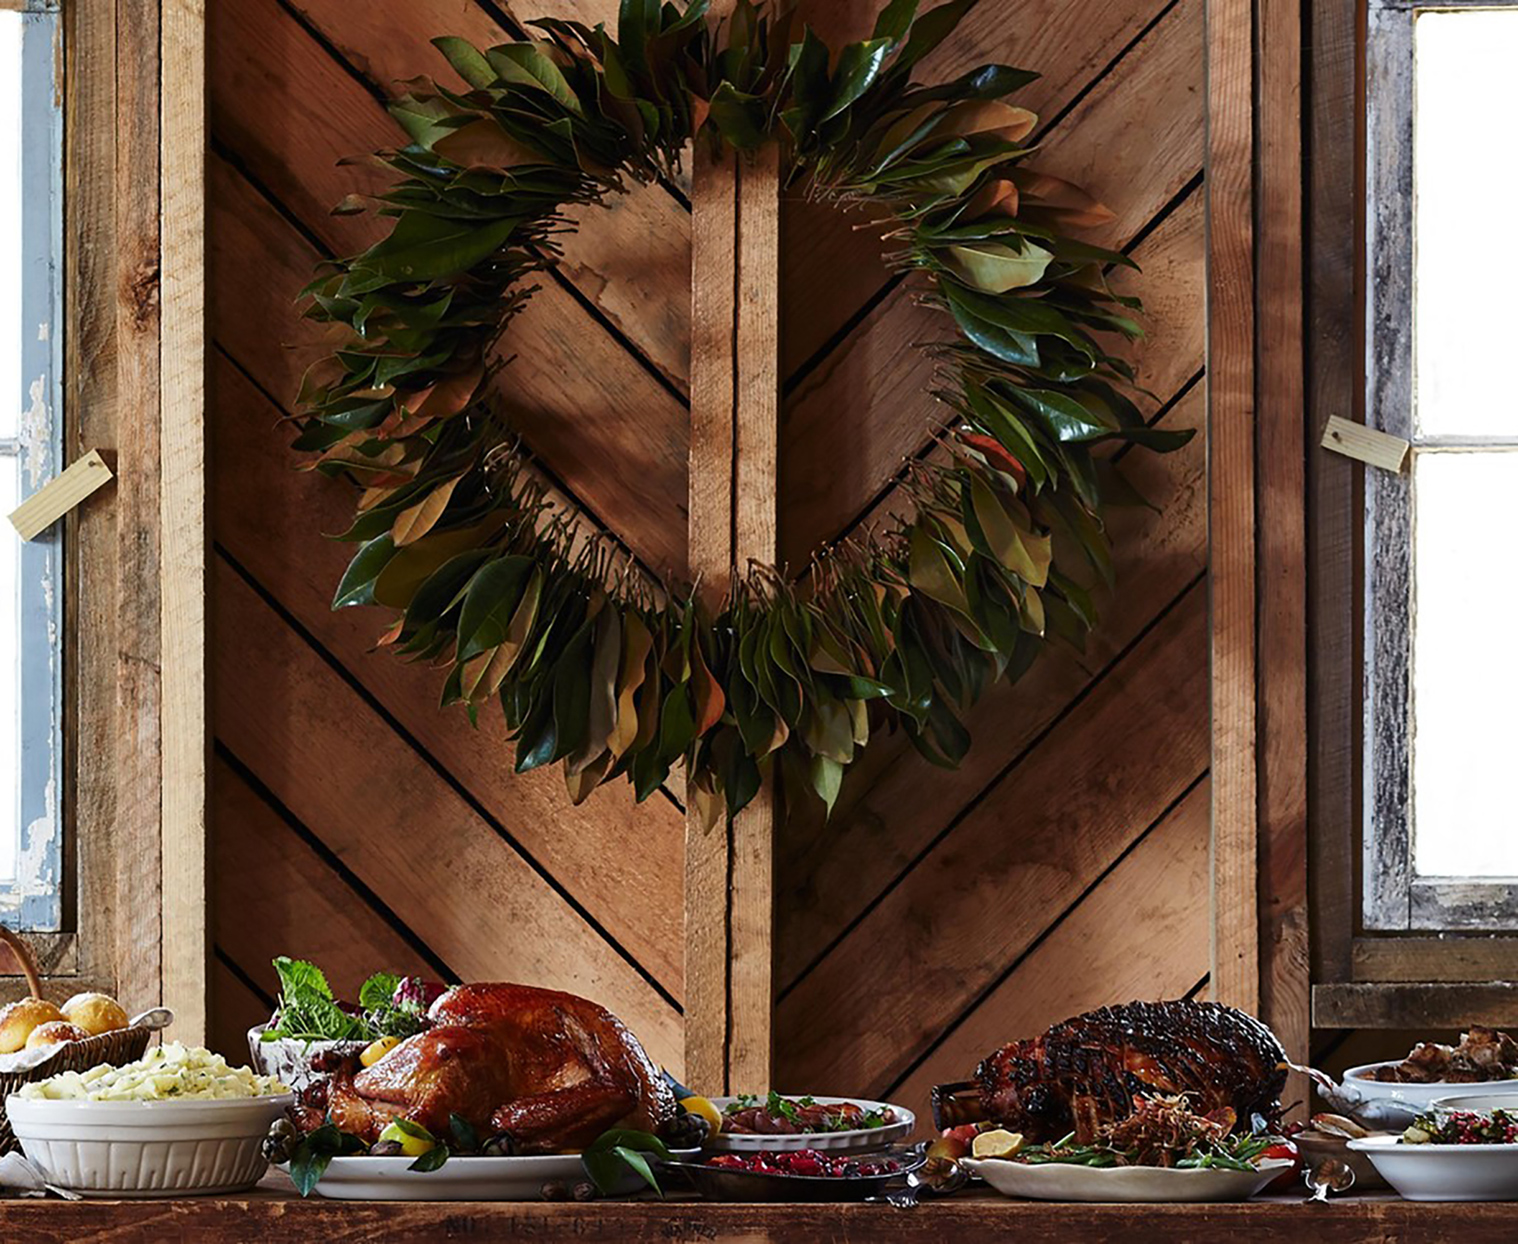 wreath hanging above table of food